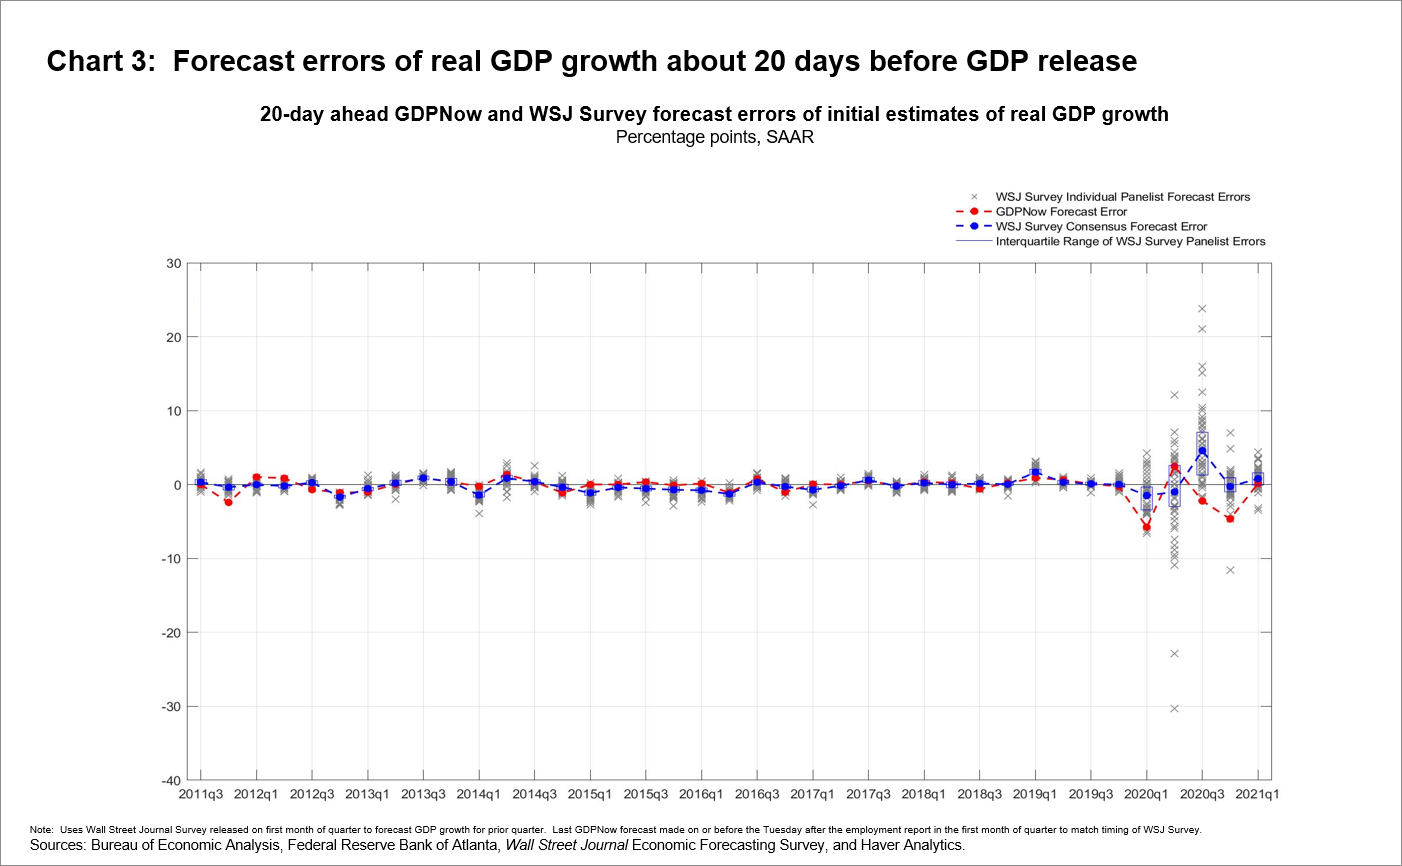 Chart 3: Forecast errors of real GDP growth about 20 days before GDP release